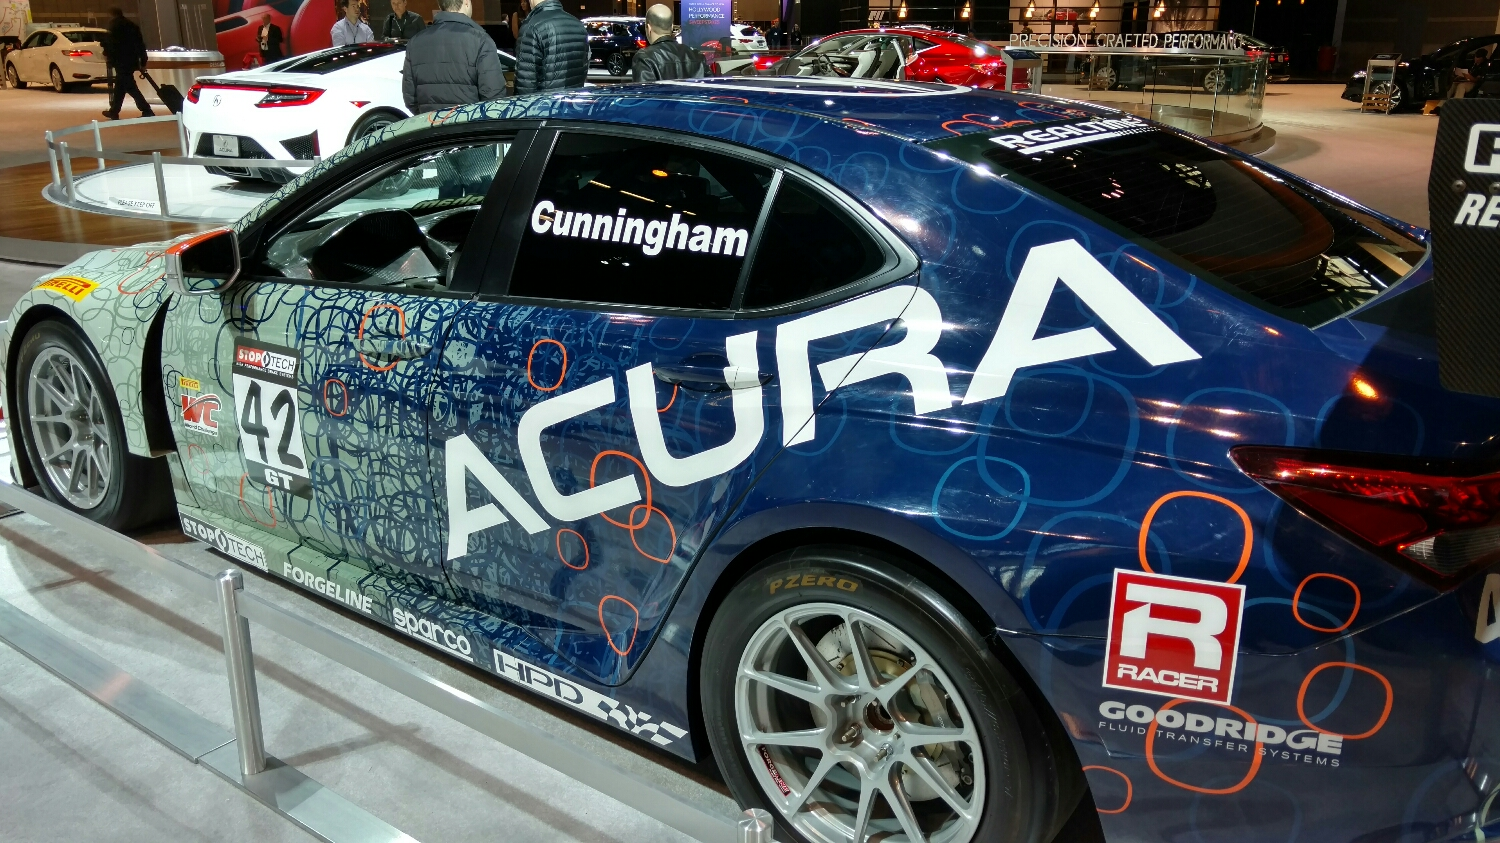 I love Acura more because of how the support this team, and have for decades.